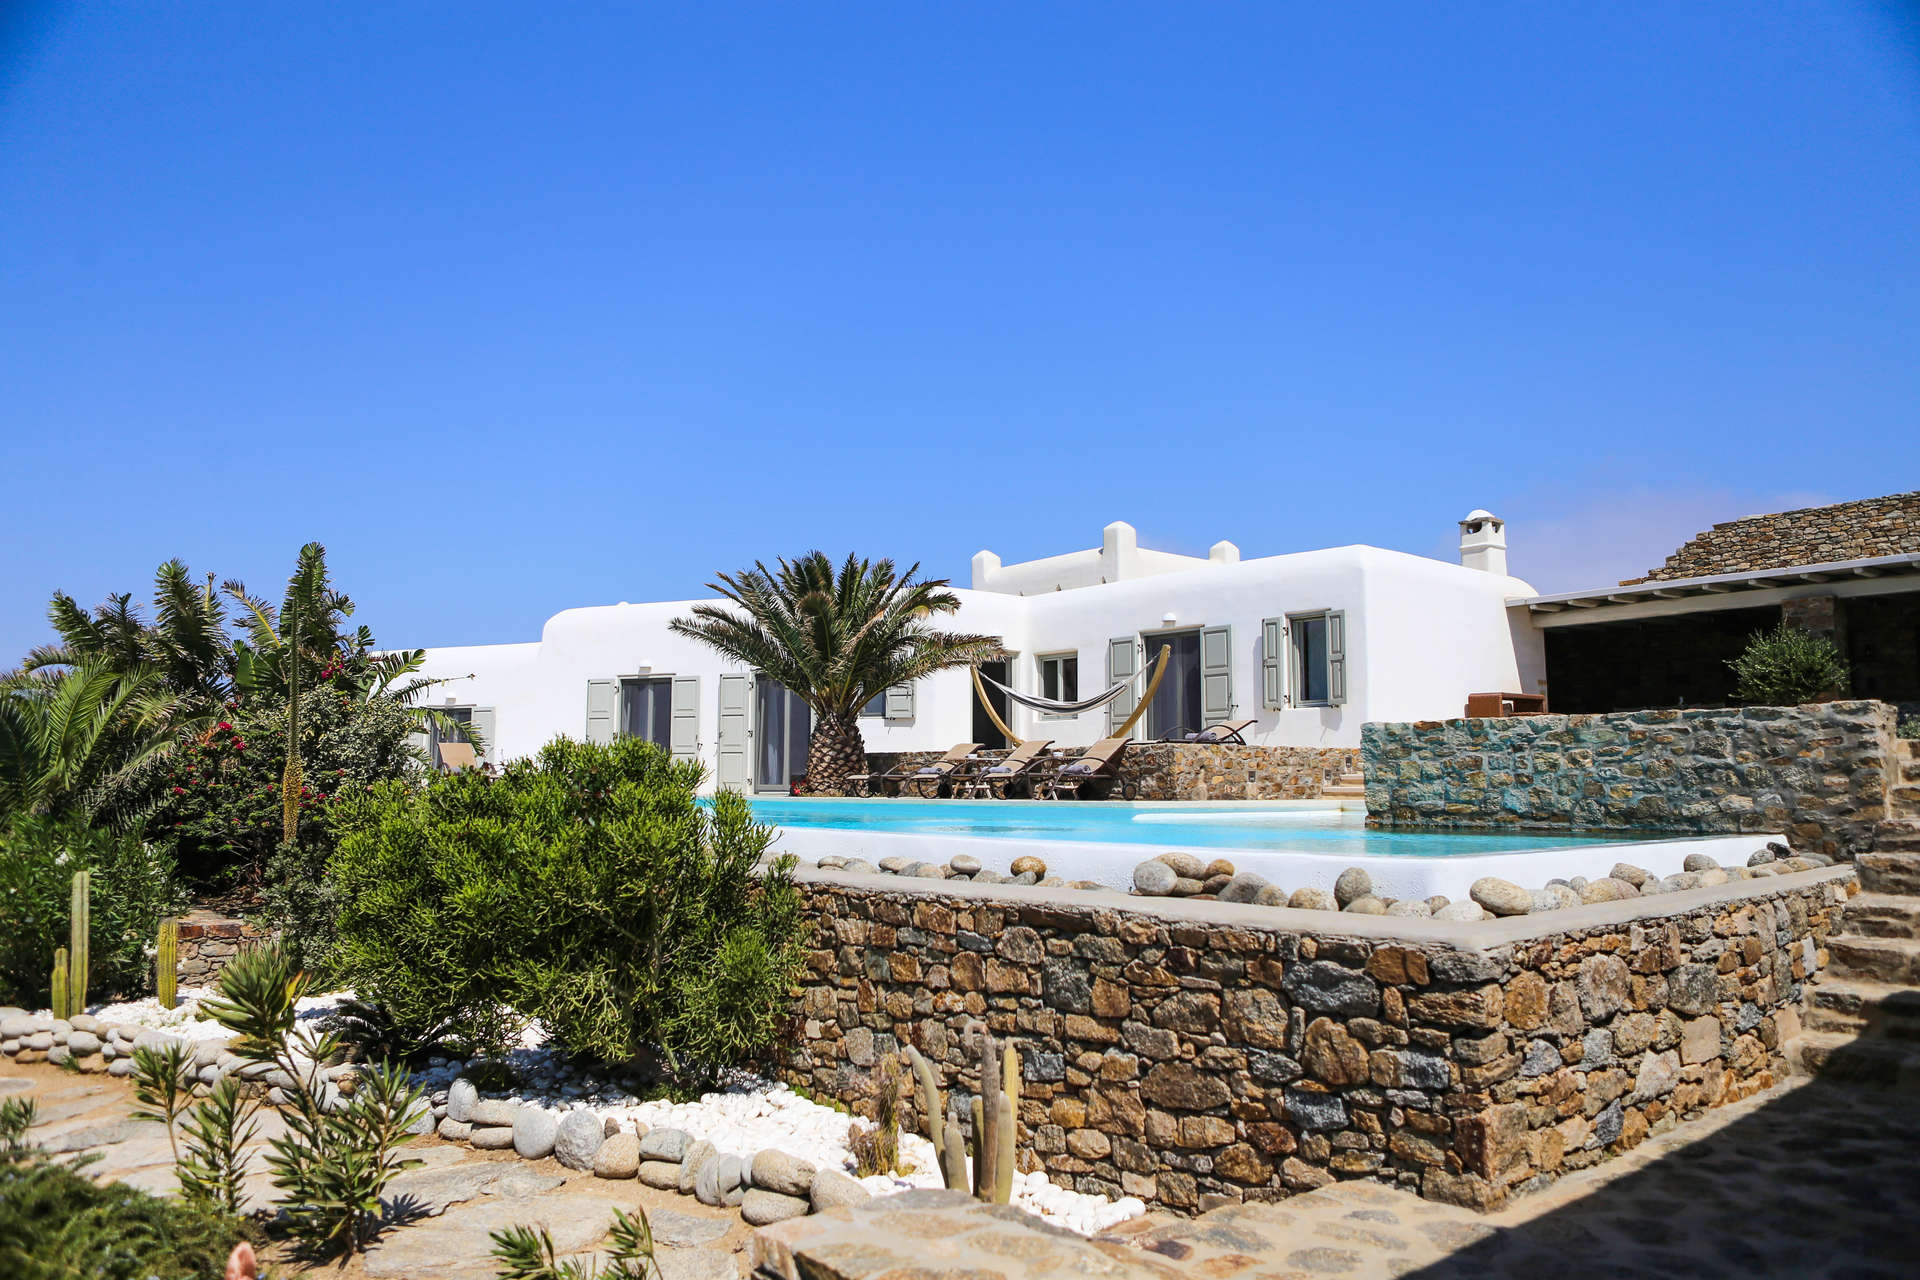 Luxury vacation rentals europe - Greece - Mykonos - Agios stefanos - Casa di Mare - Image 1/26